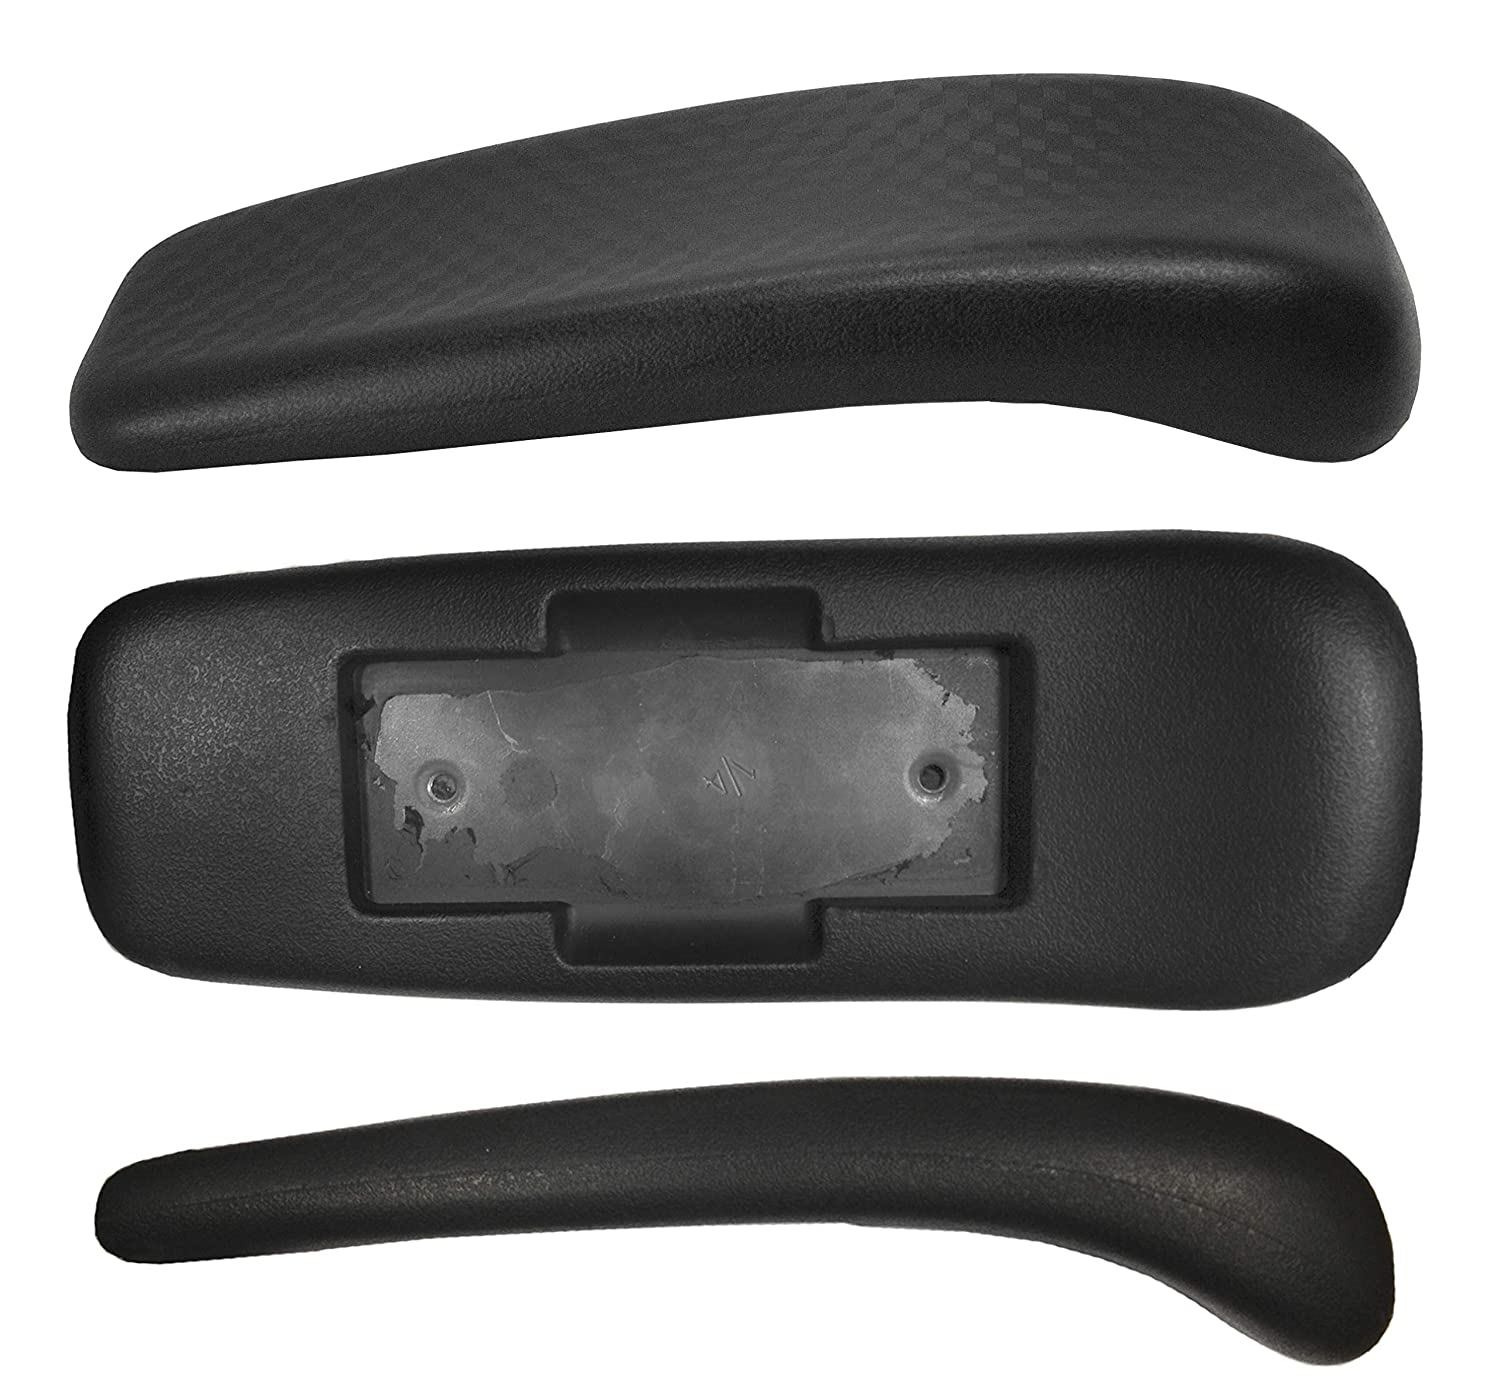 Replacement Office Chair Armrest Arm Pads (Set of 2) S4624-2